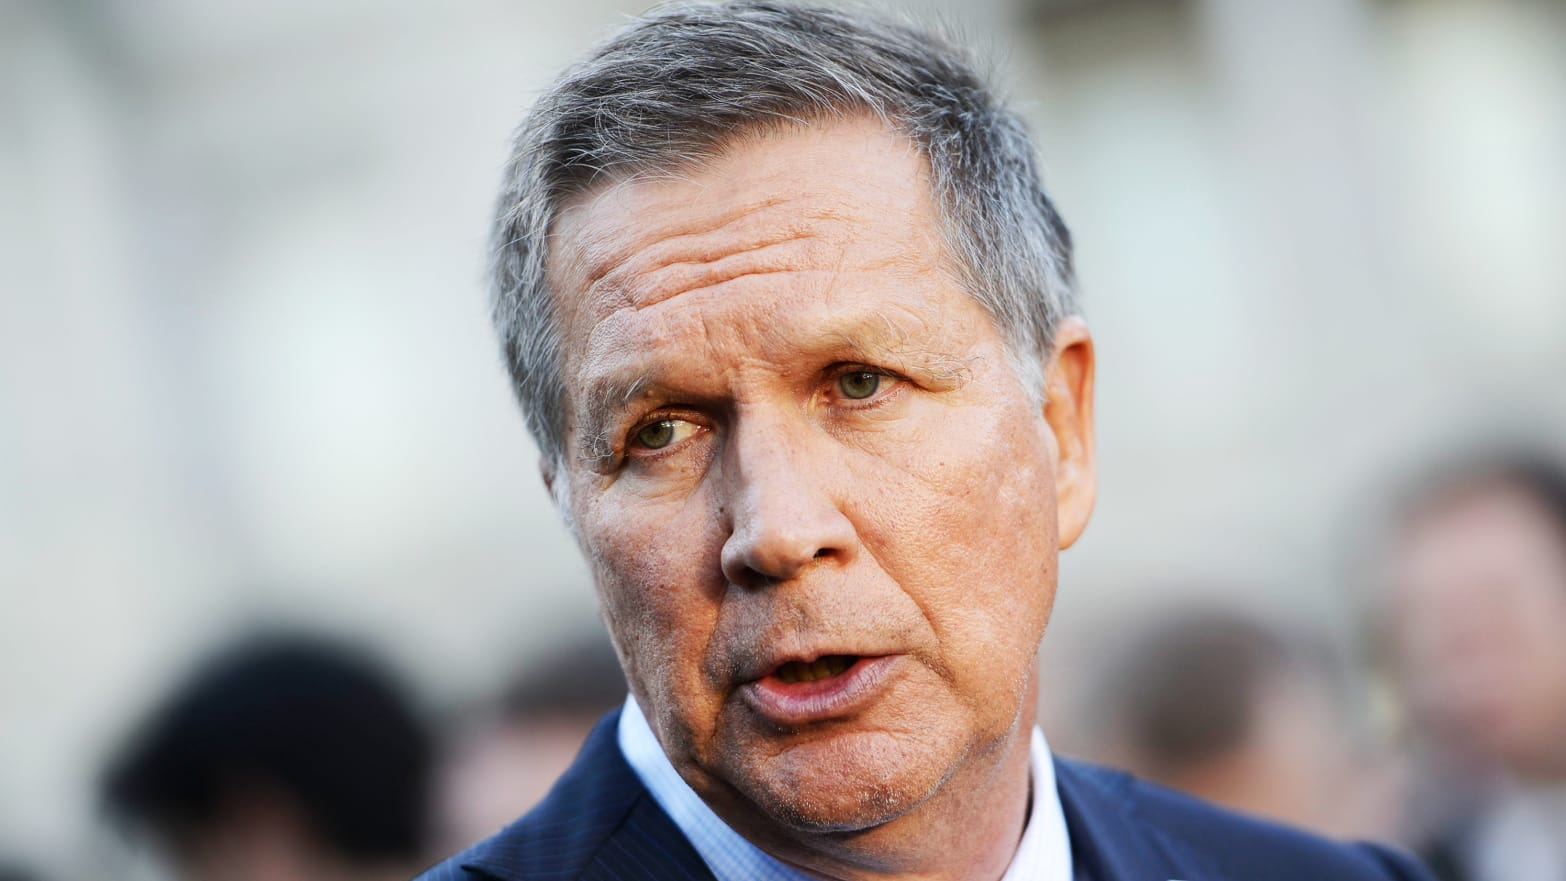 Why Is CNN Paying John Kasich ...